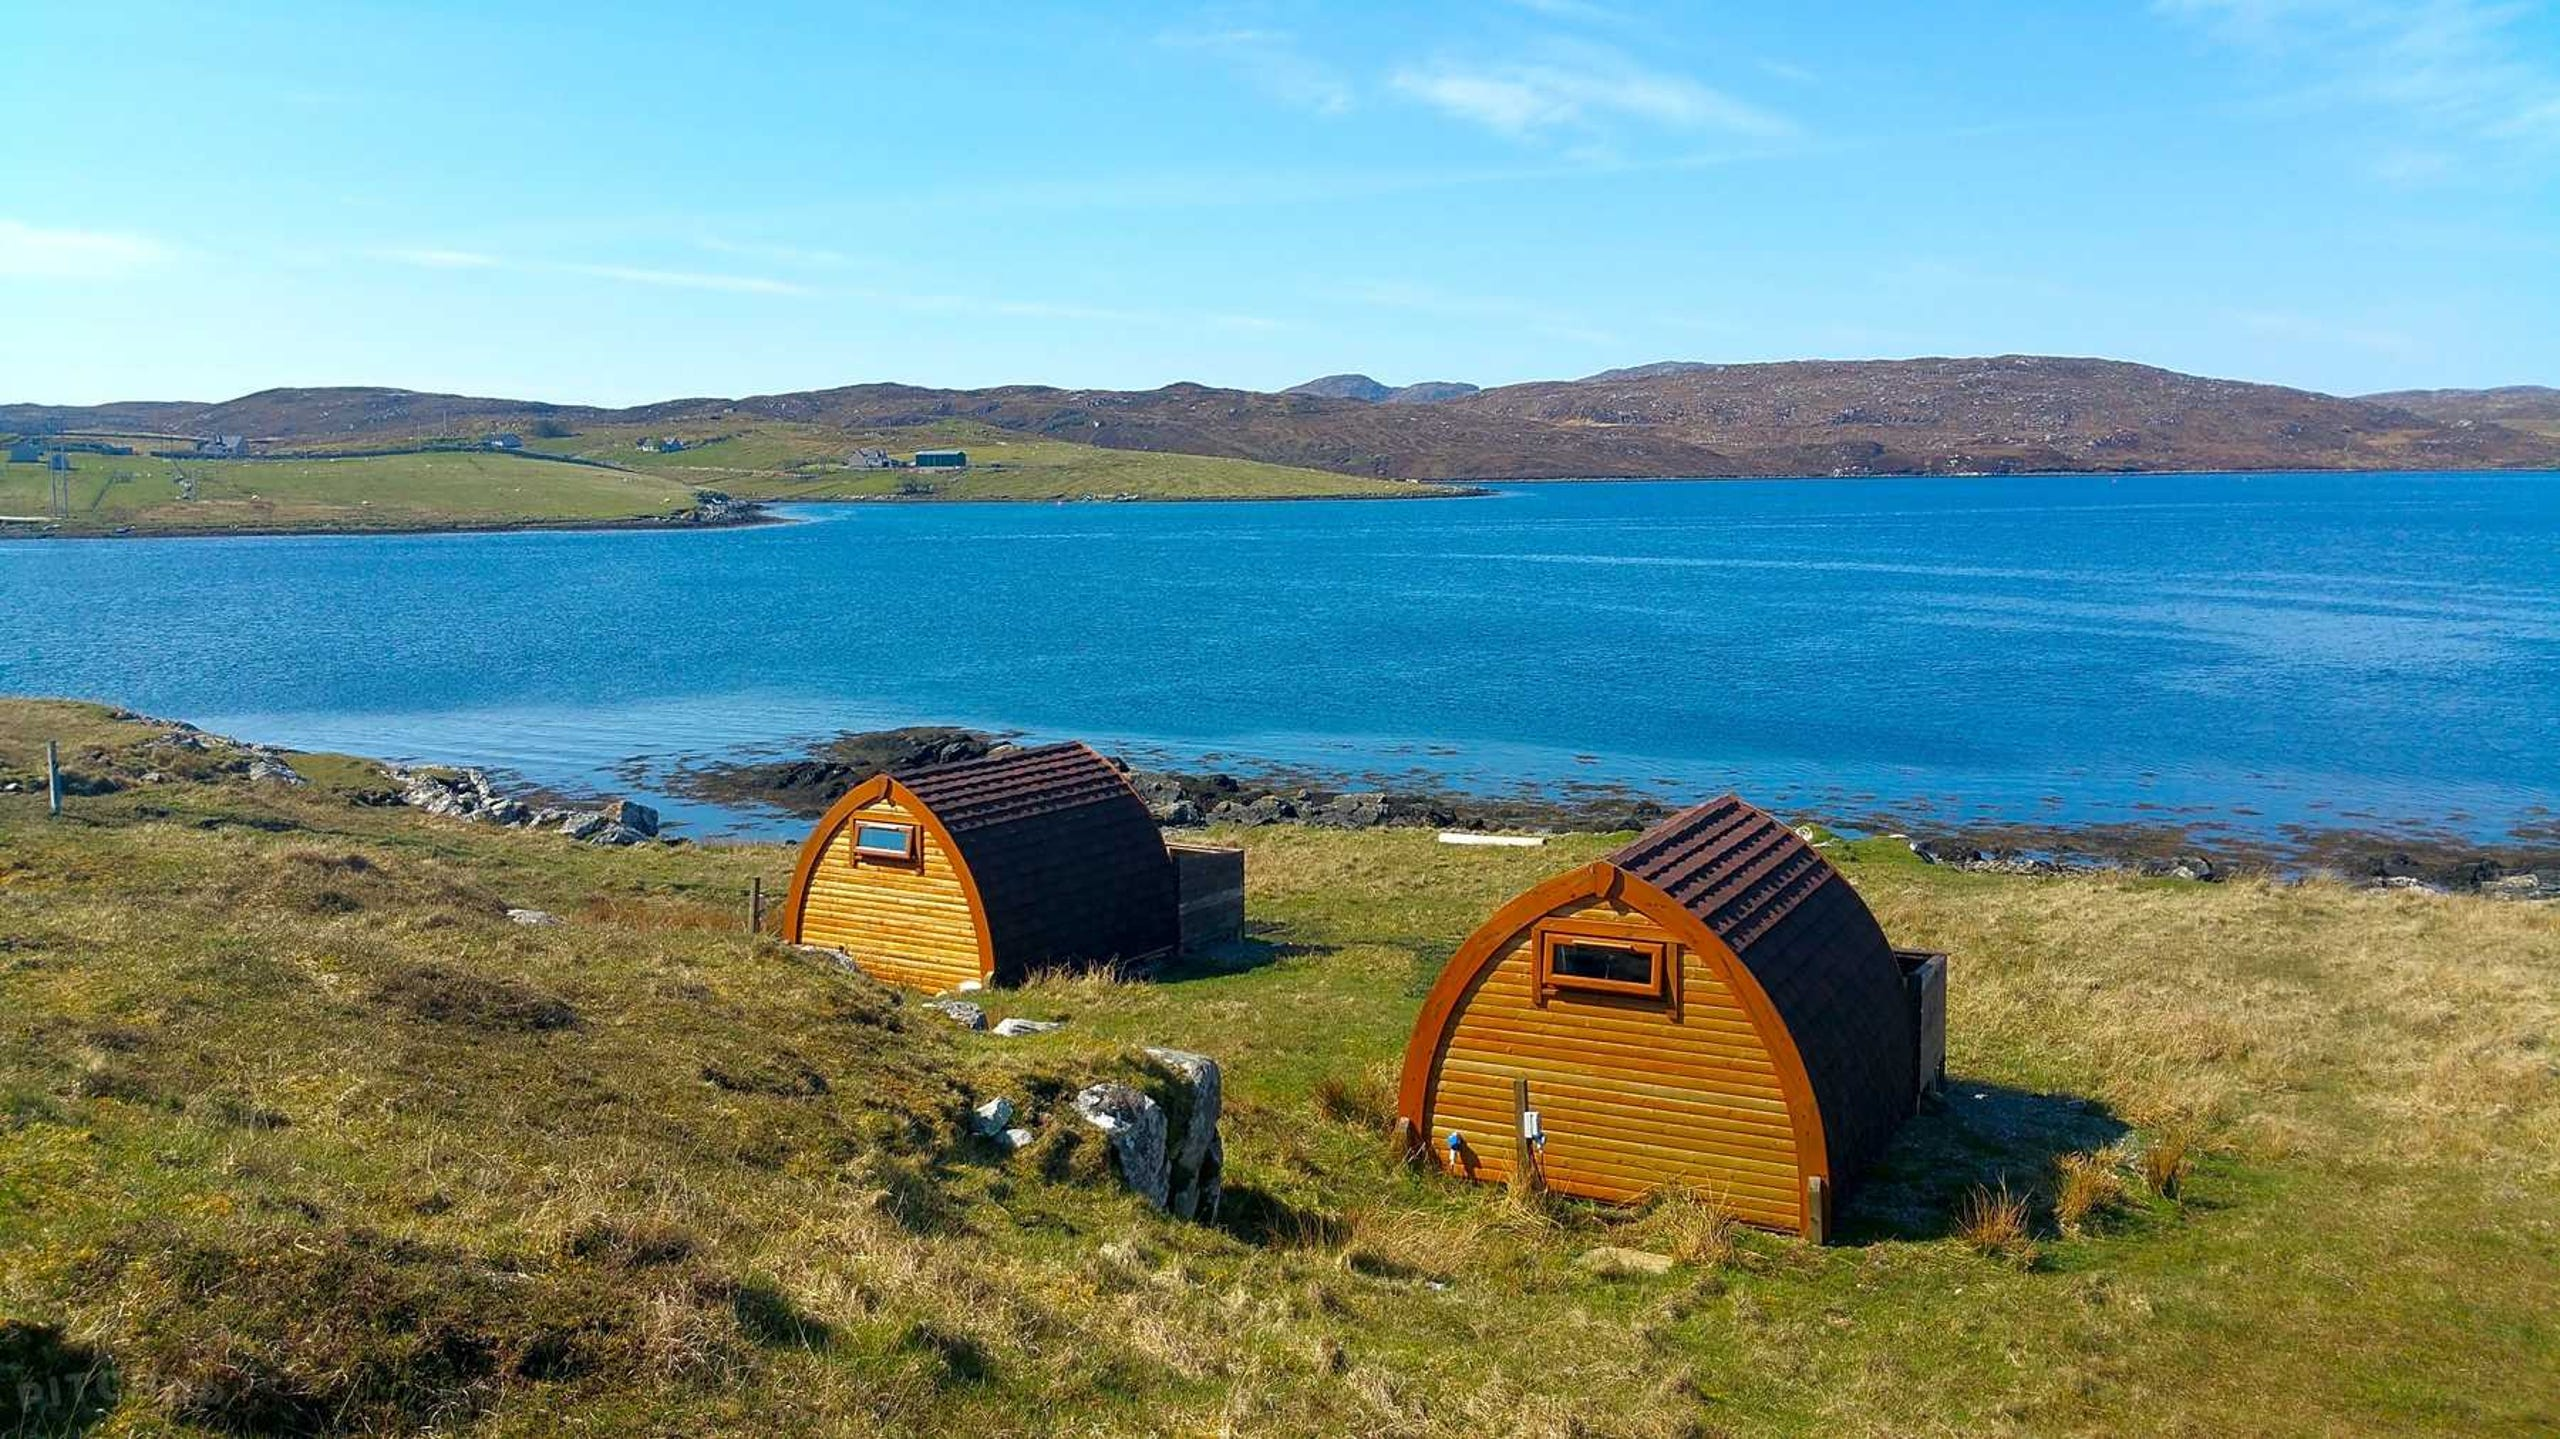 <strong>3. Scotland, Callanish Camping: </strong>The pods visitors stay at here require no extra effort to get comfortable. Each one has main power, energy lights, heaters, double sockets, an electric kettle, microwave and cool box. It is a bit of glamping with an outdoor feel. Wake up and step right outside to watch the sunset or sunrise. These pods bring relaxation and a break from reality. And the main town is just a ferry ride away.<br /> <strong>Price: </strong>Starting at $55.13 a night<br /> <strong>Park type: </strong>Lodge, cabin, pod or hut